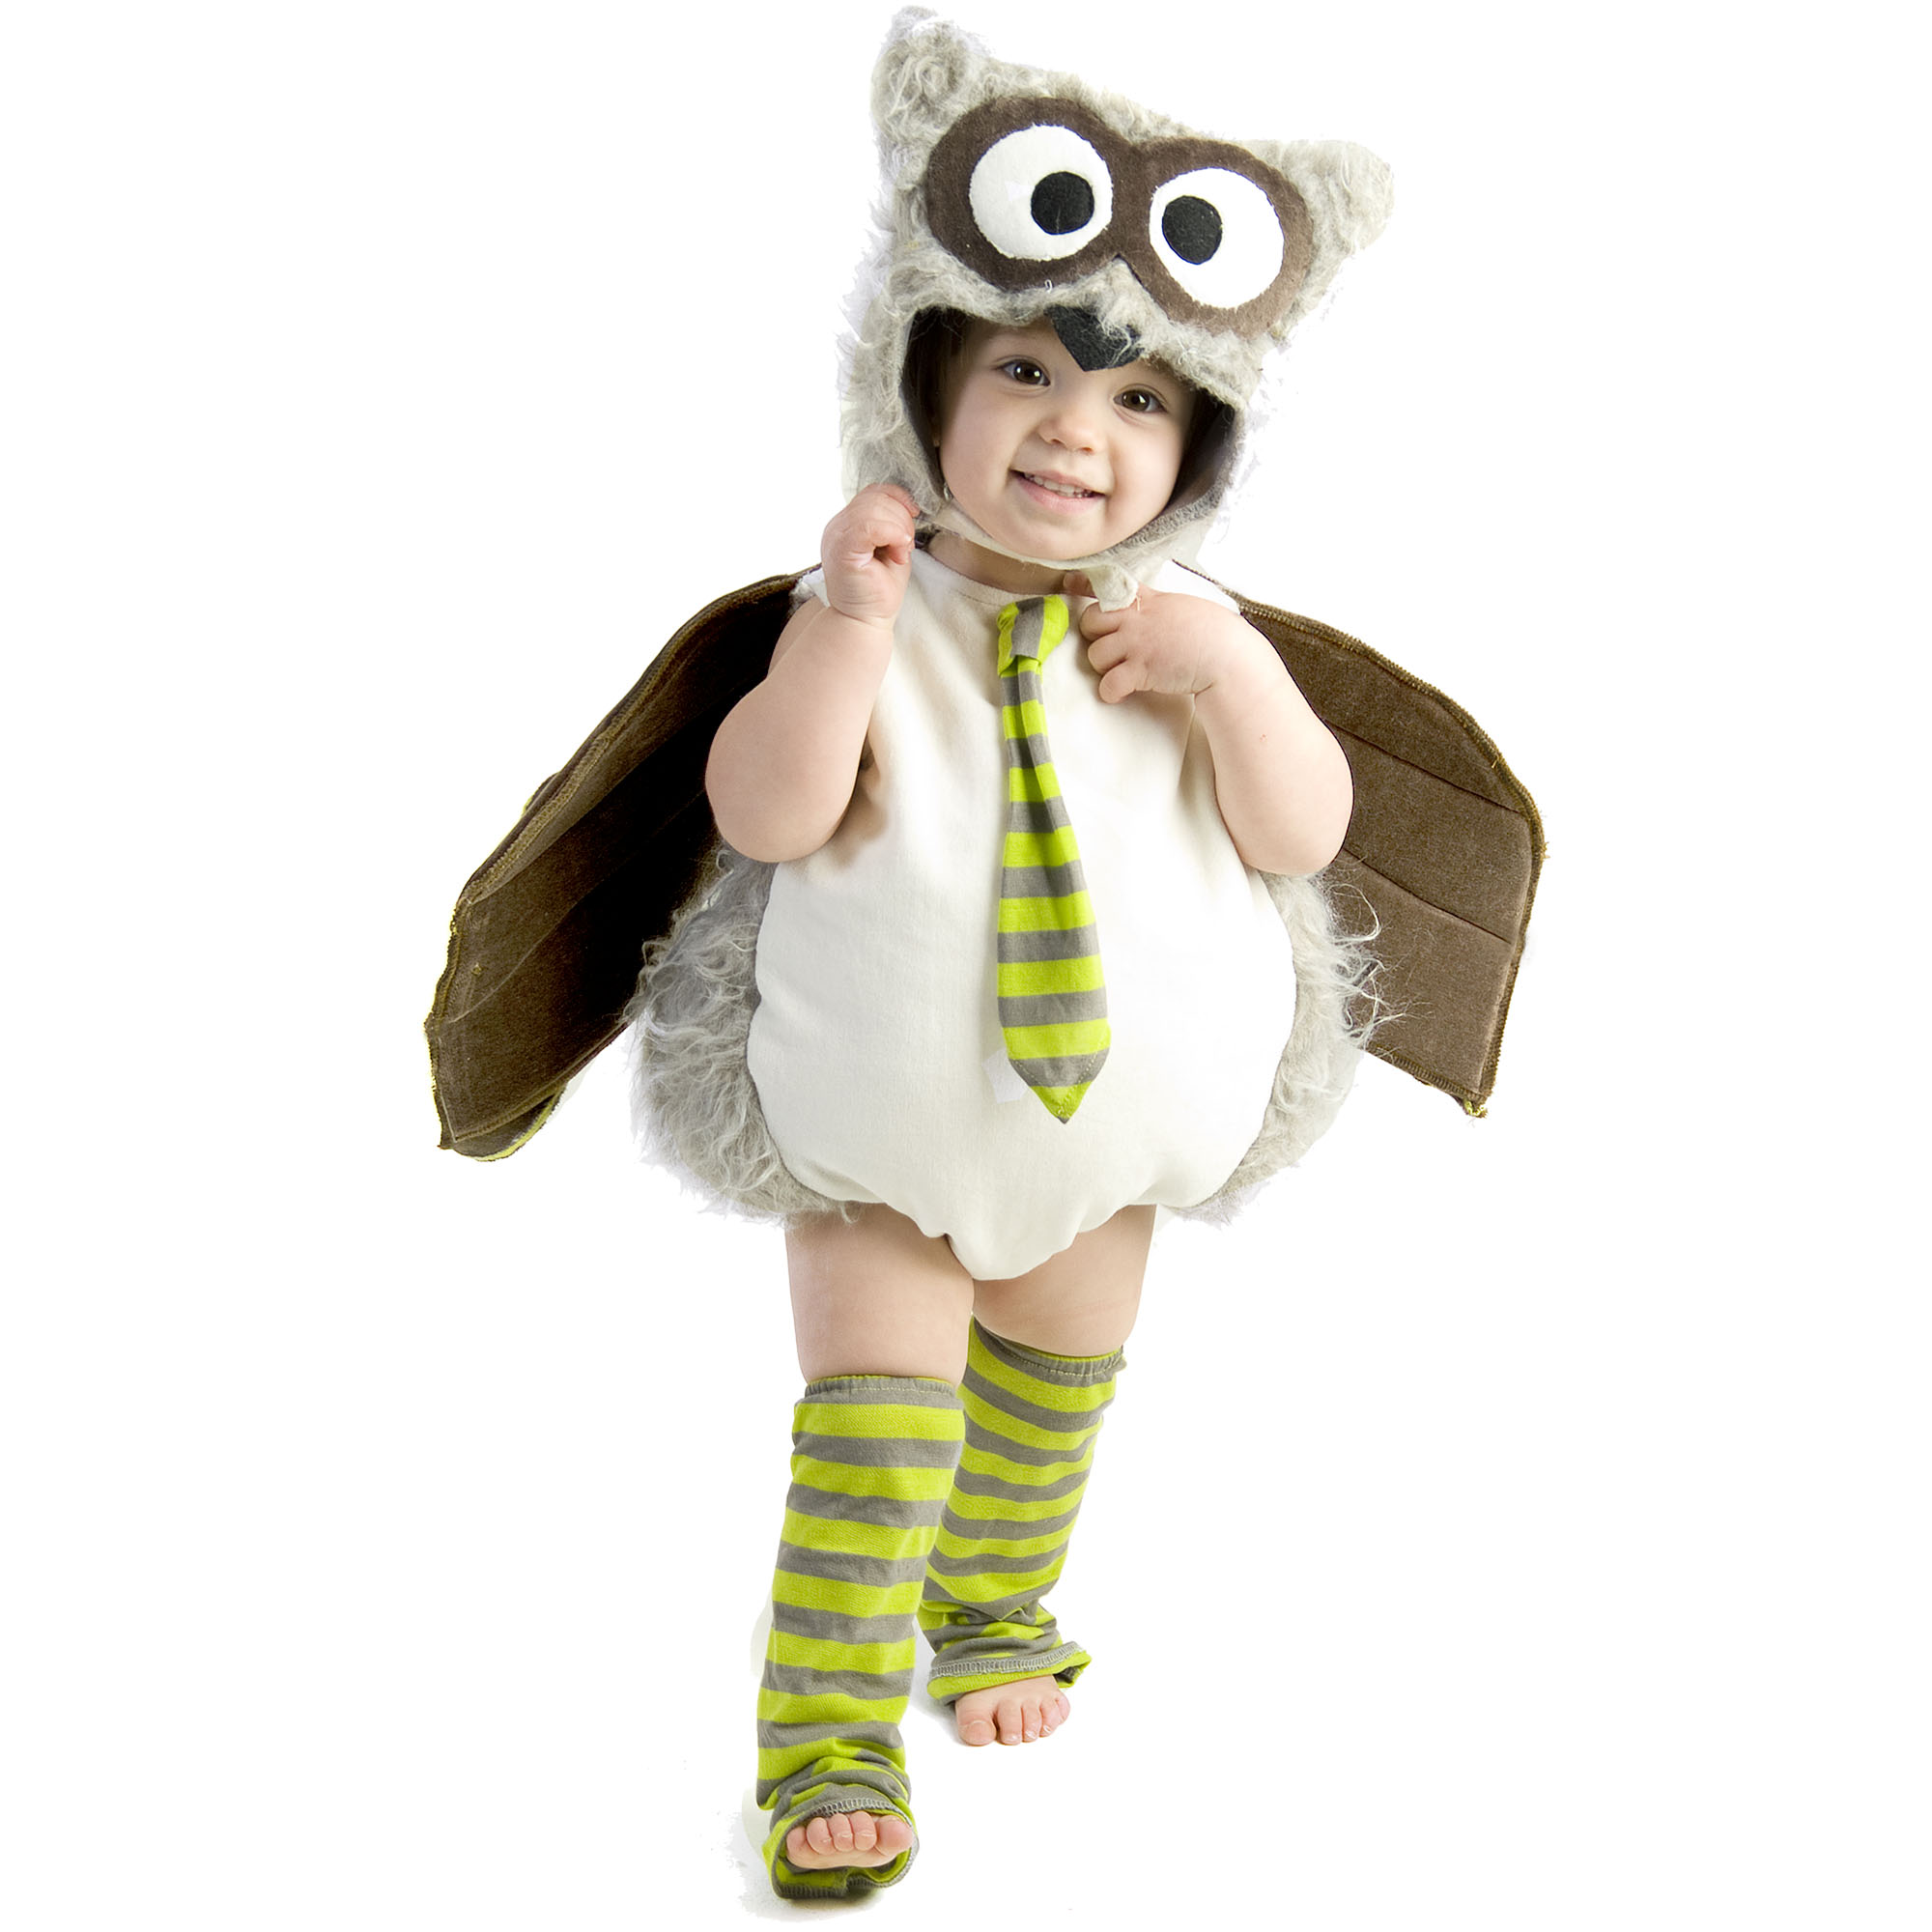 Princess Paradise Premium Edward the Owl Toddler Costume